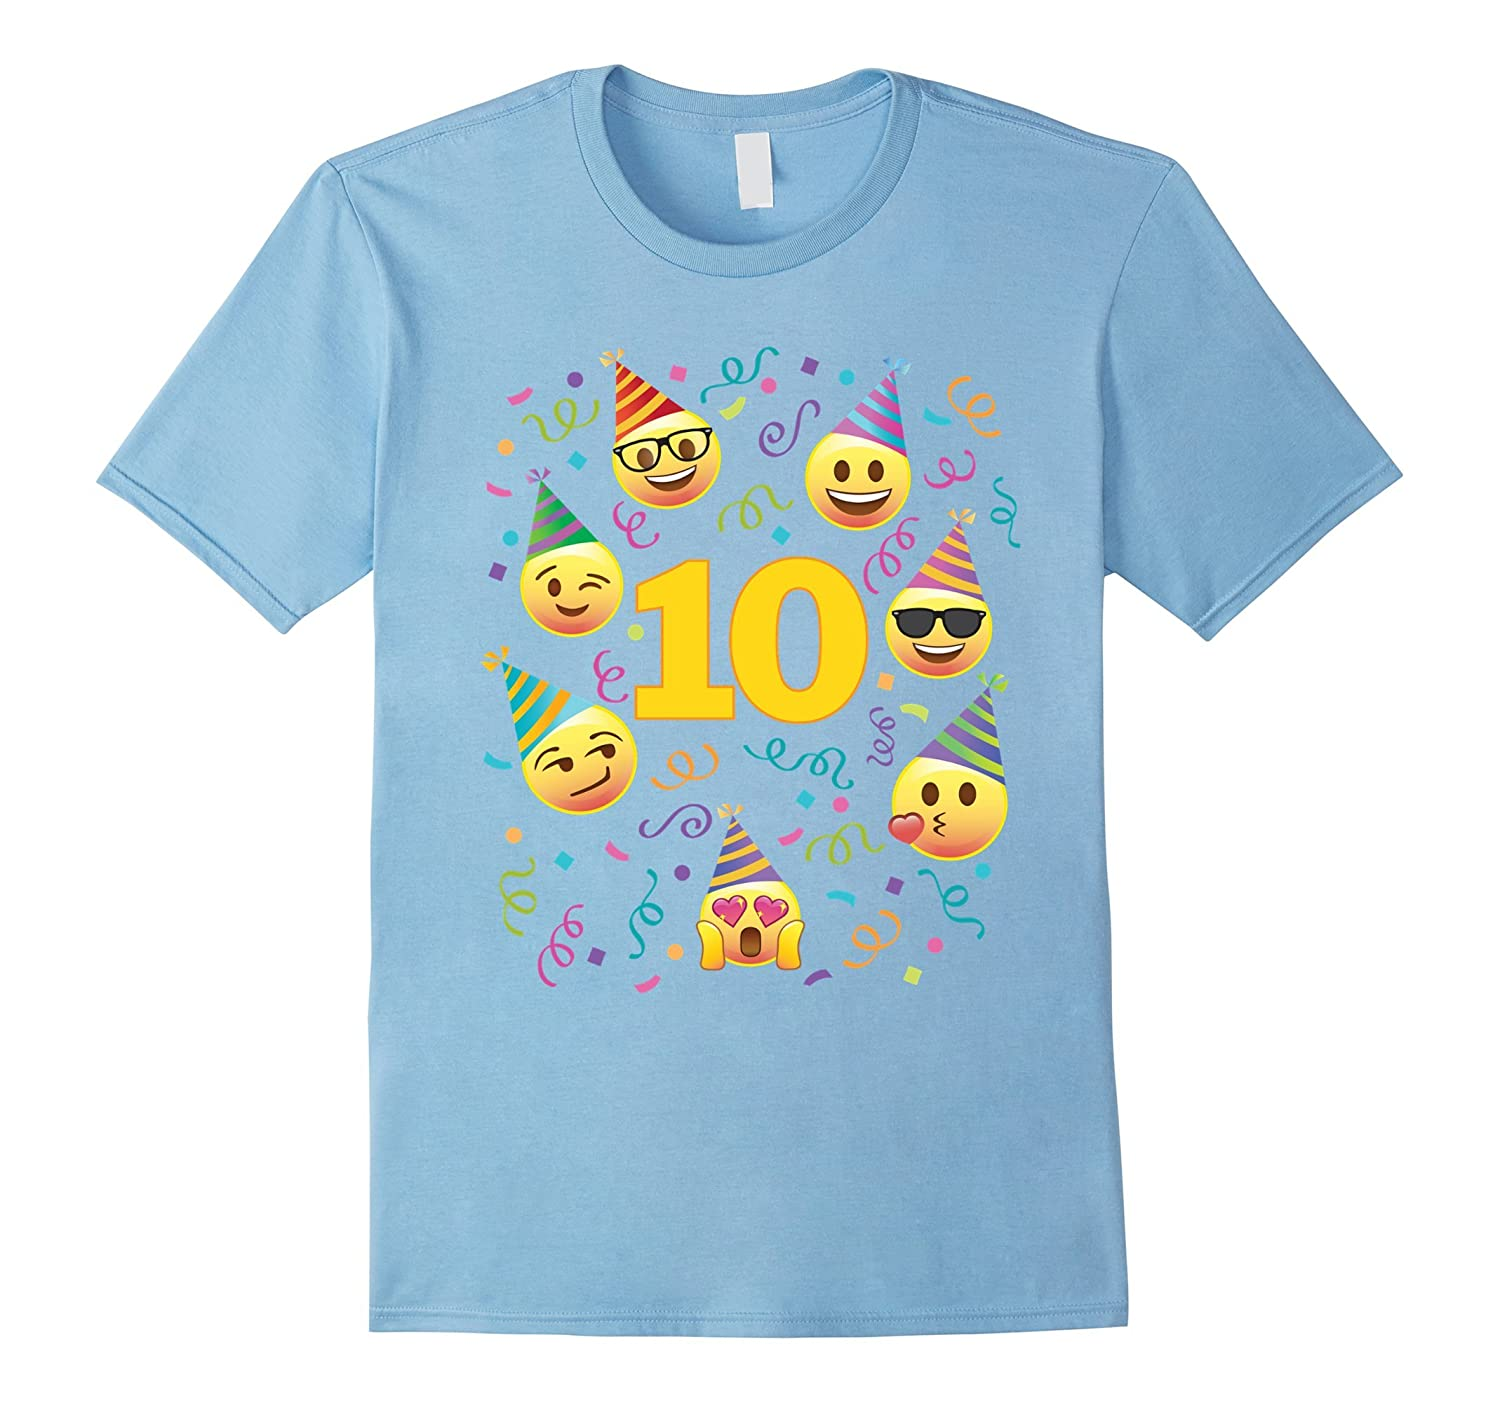 Emoji Birthday Shirt For 10 Ten Year Old Girl Boy Party Tee Cutaxoa